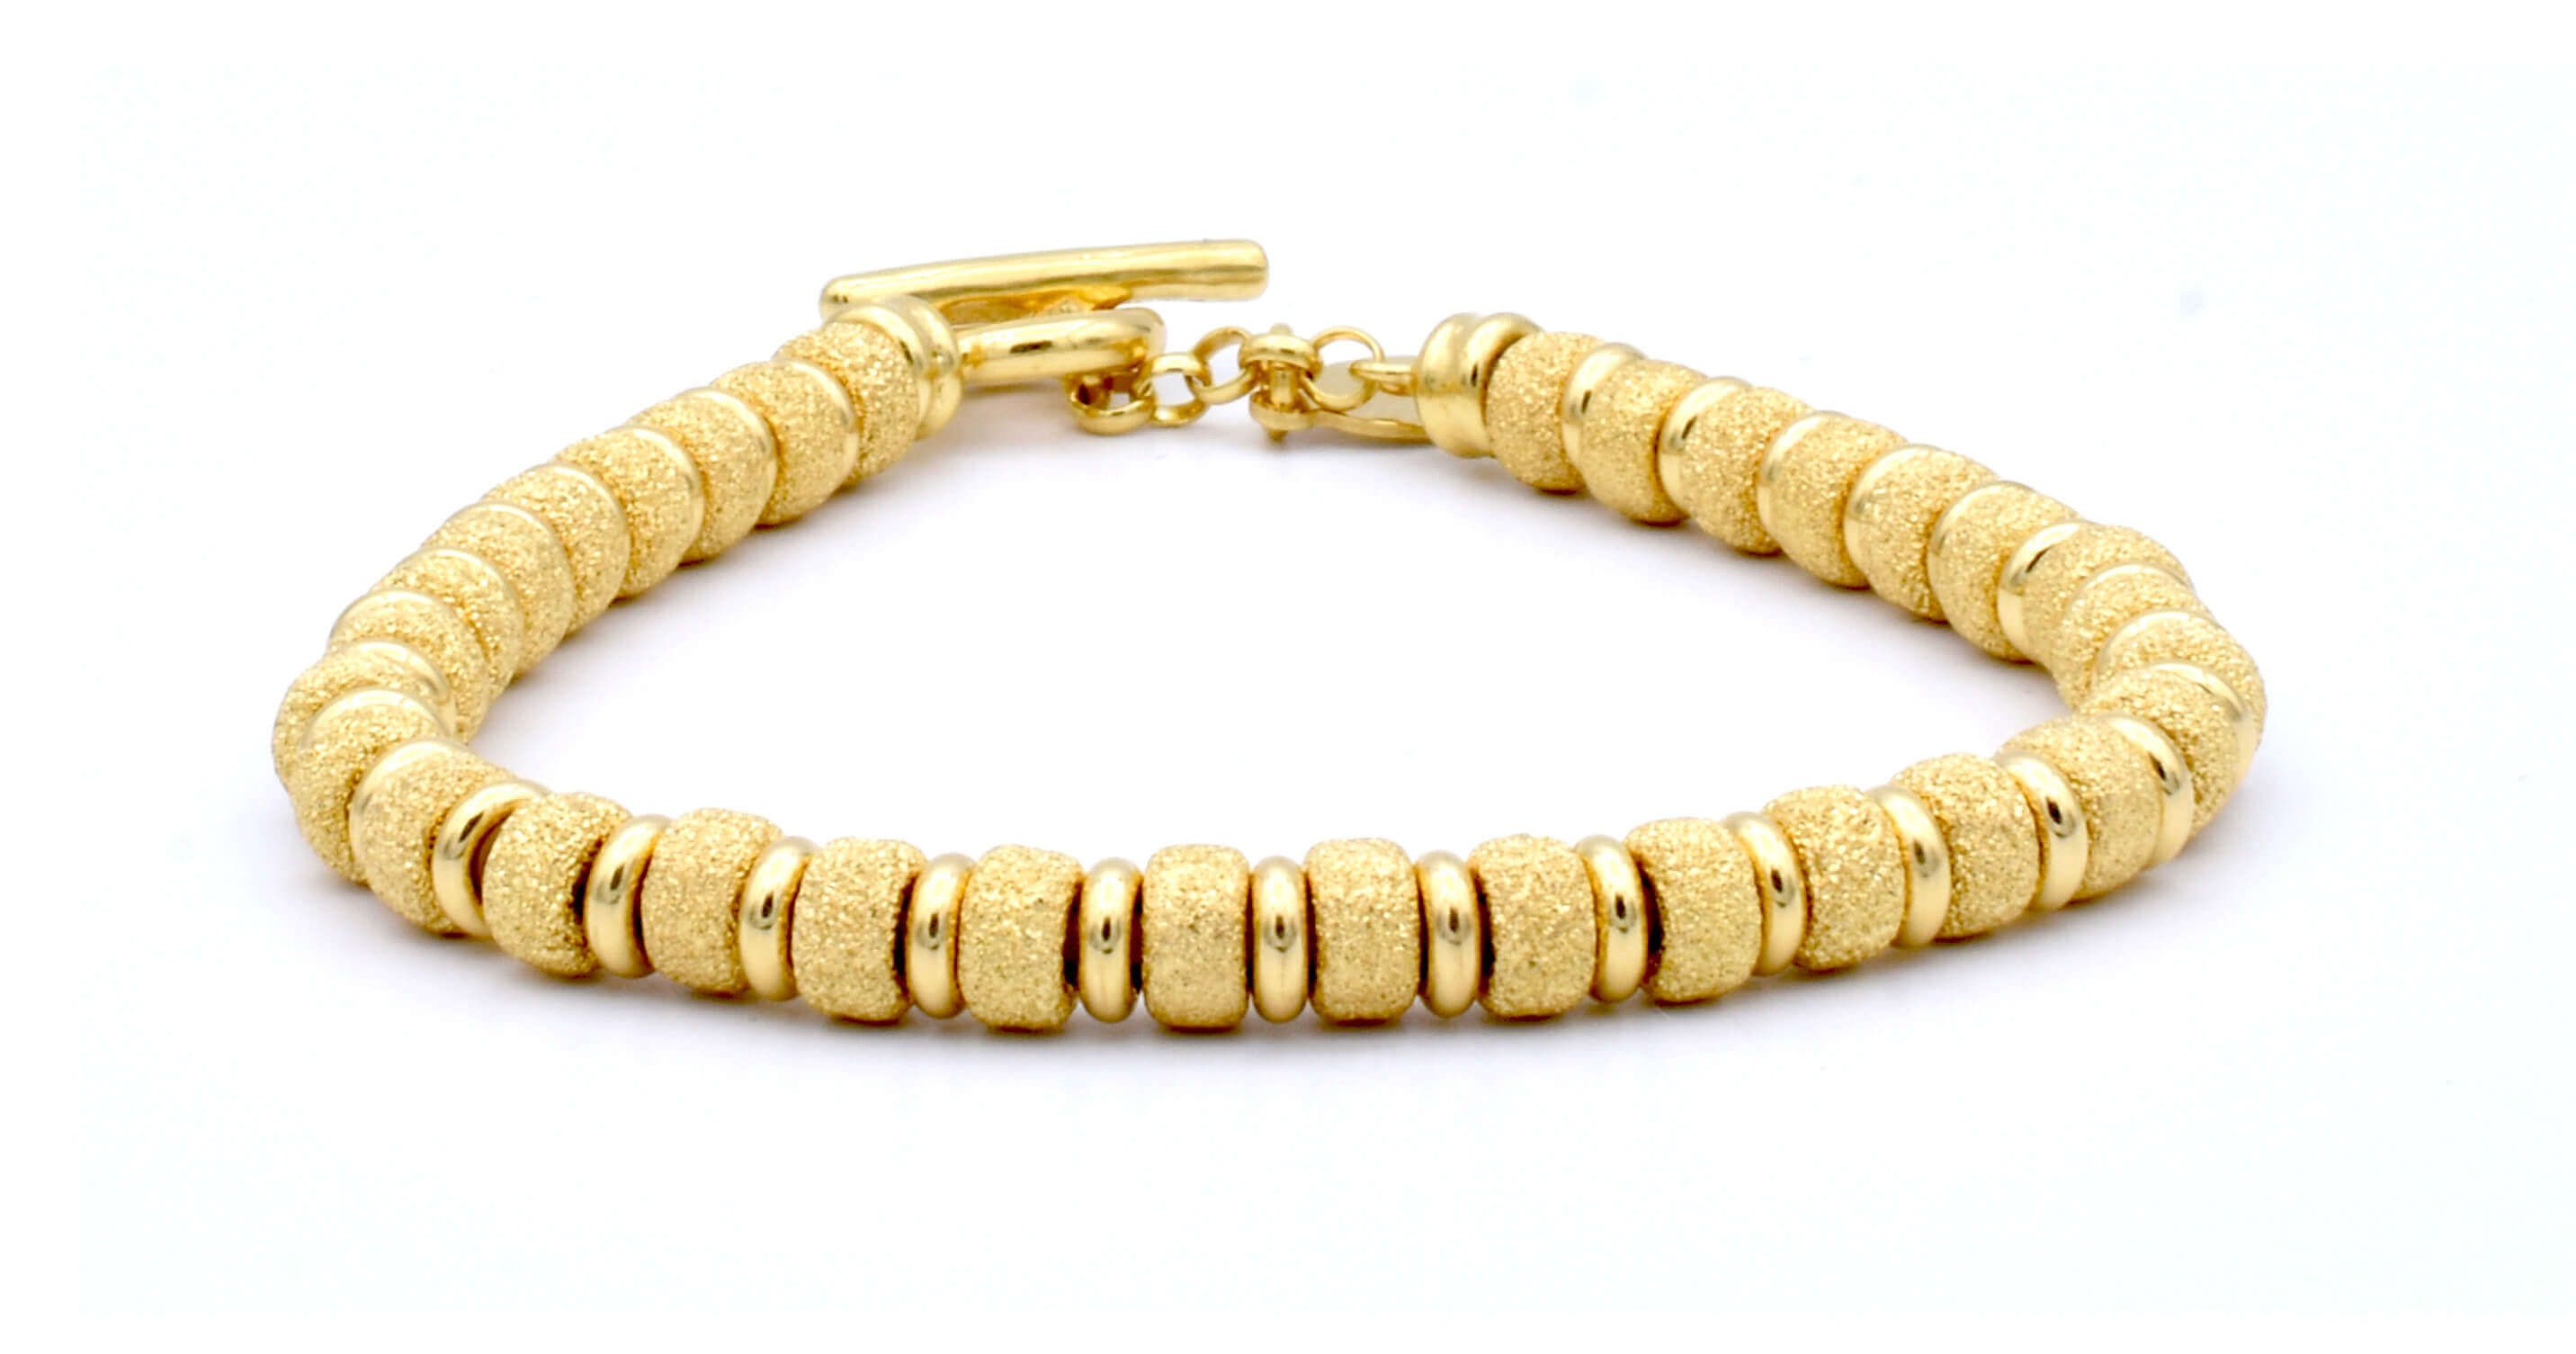 Mens Bracelet Gold Design Bracelets Gents Catalog With Designs